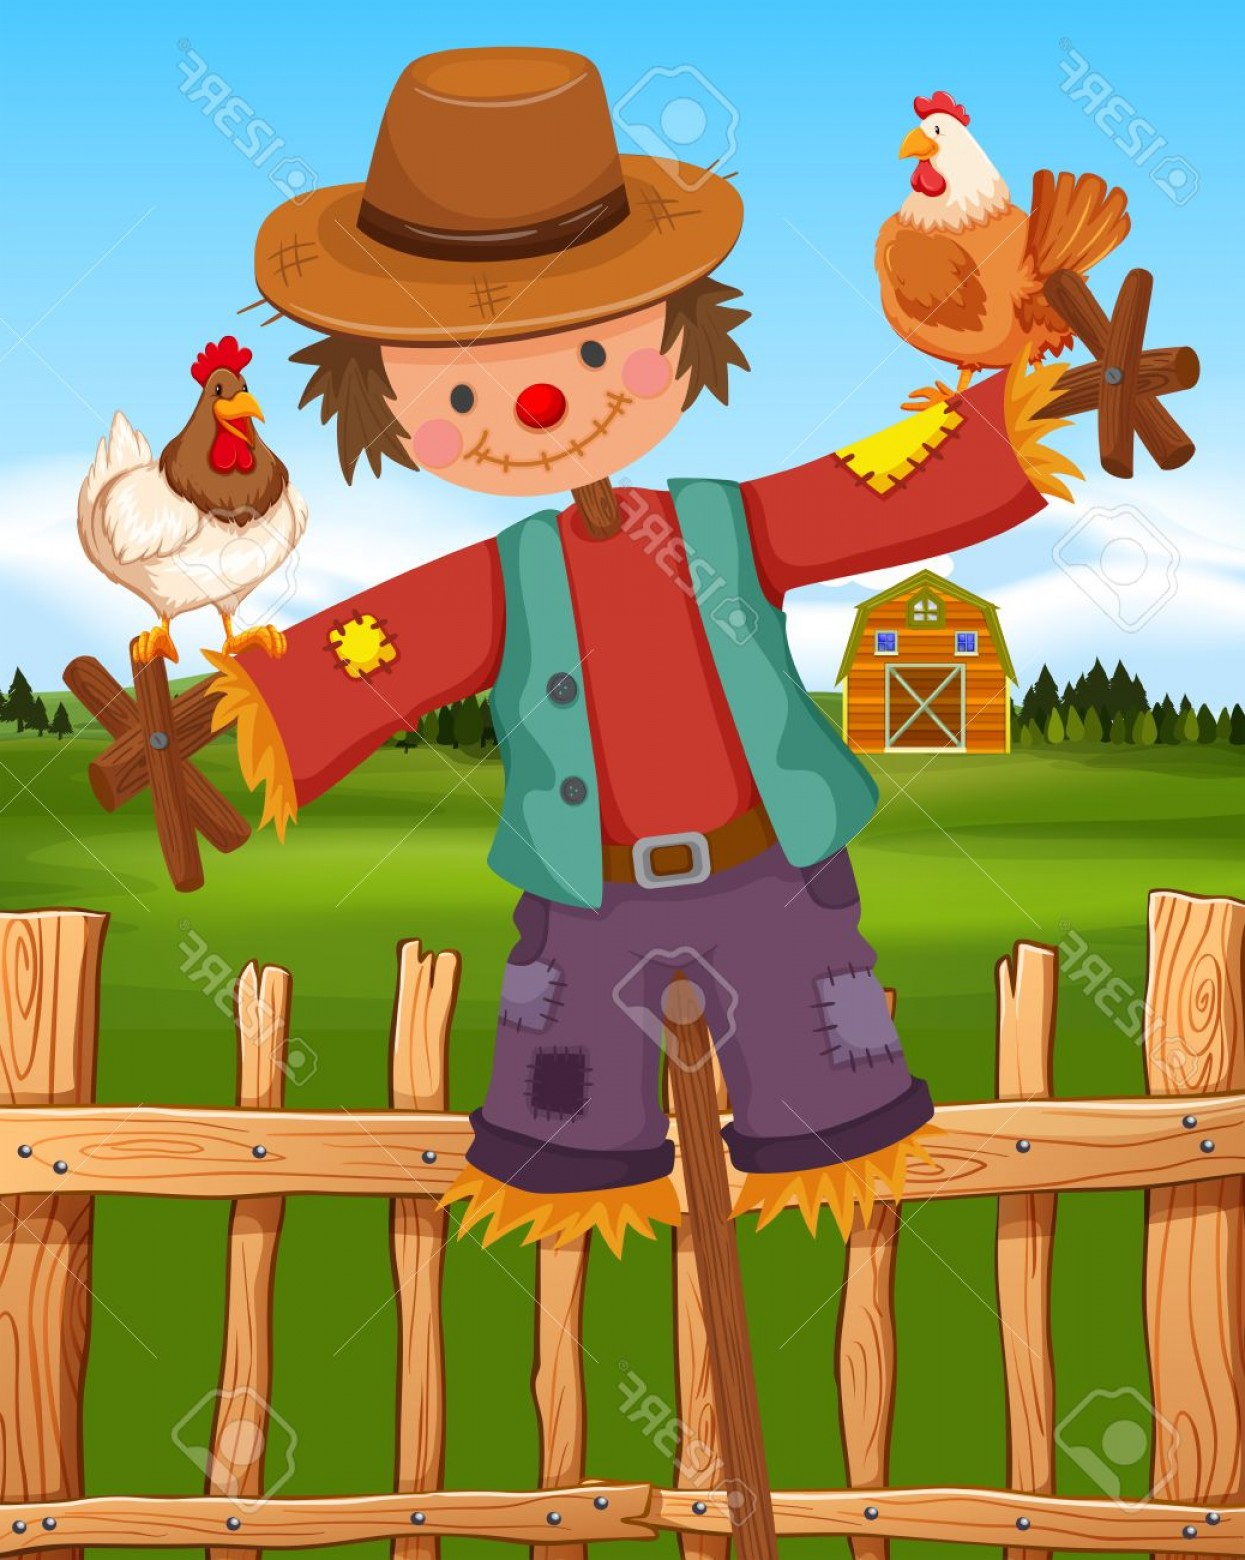 Scarecrow Vector Art: Photostock Vector Scarecrow And Chickens On The Farm Illustration